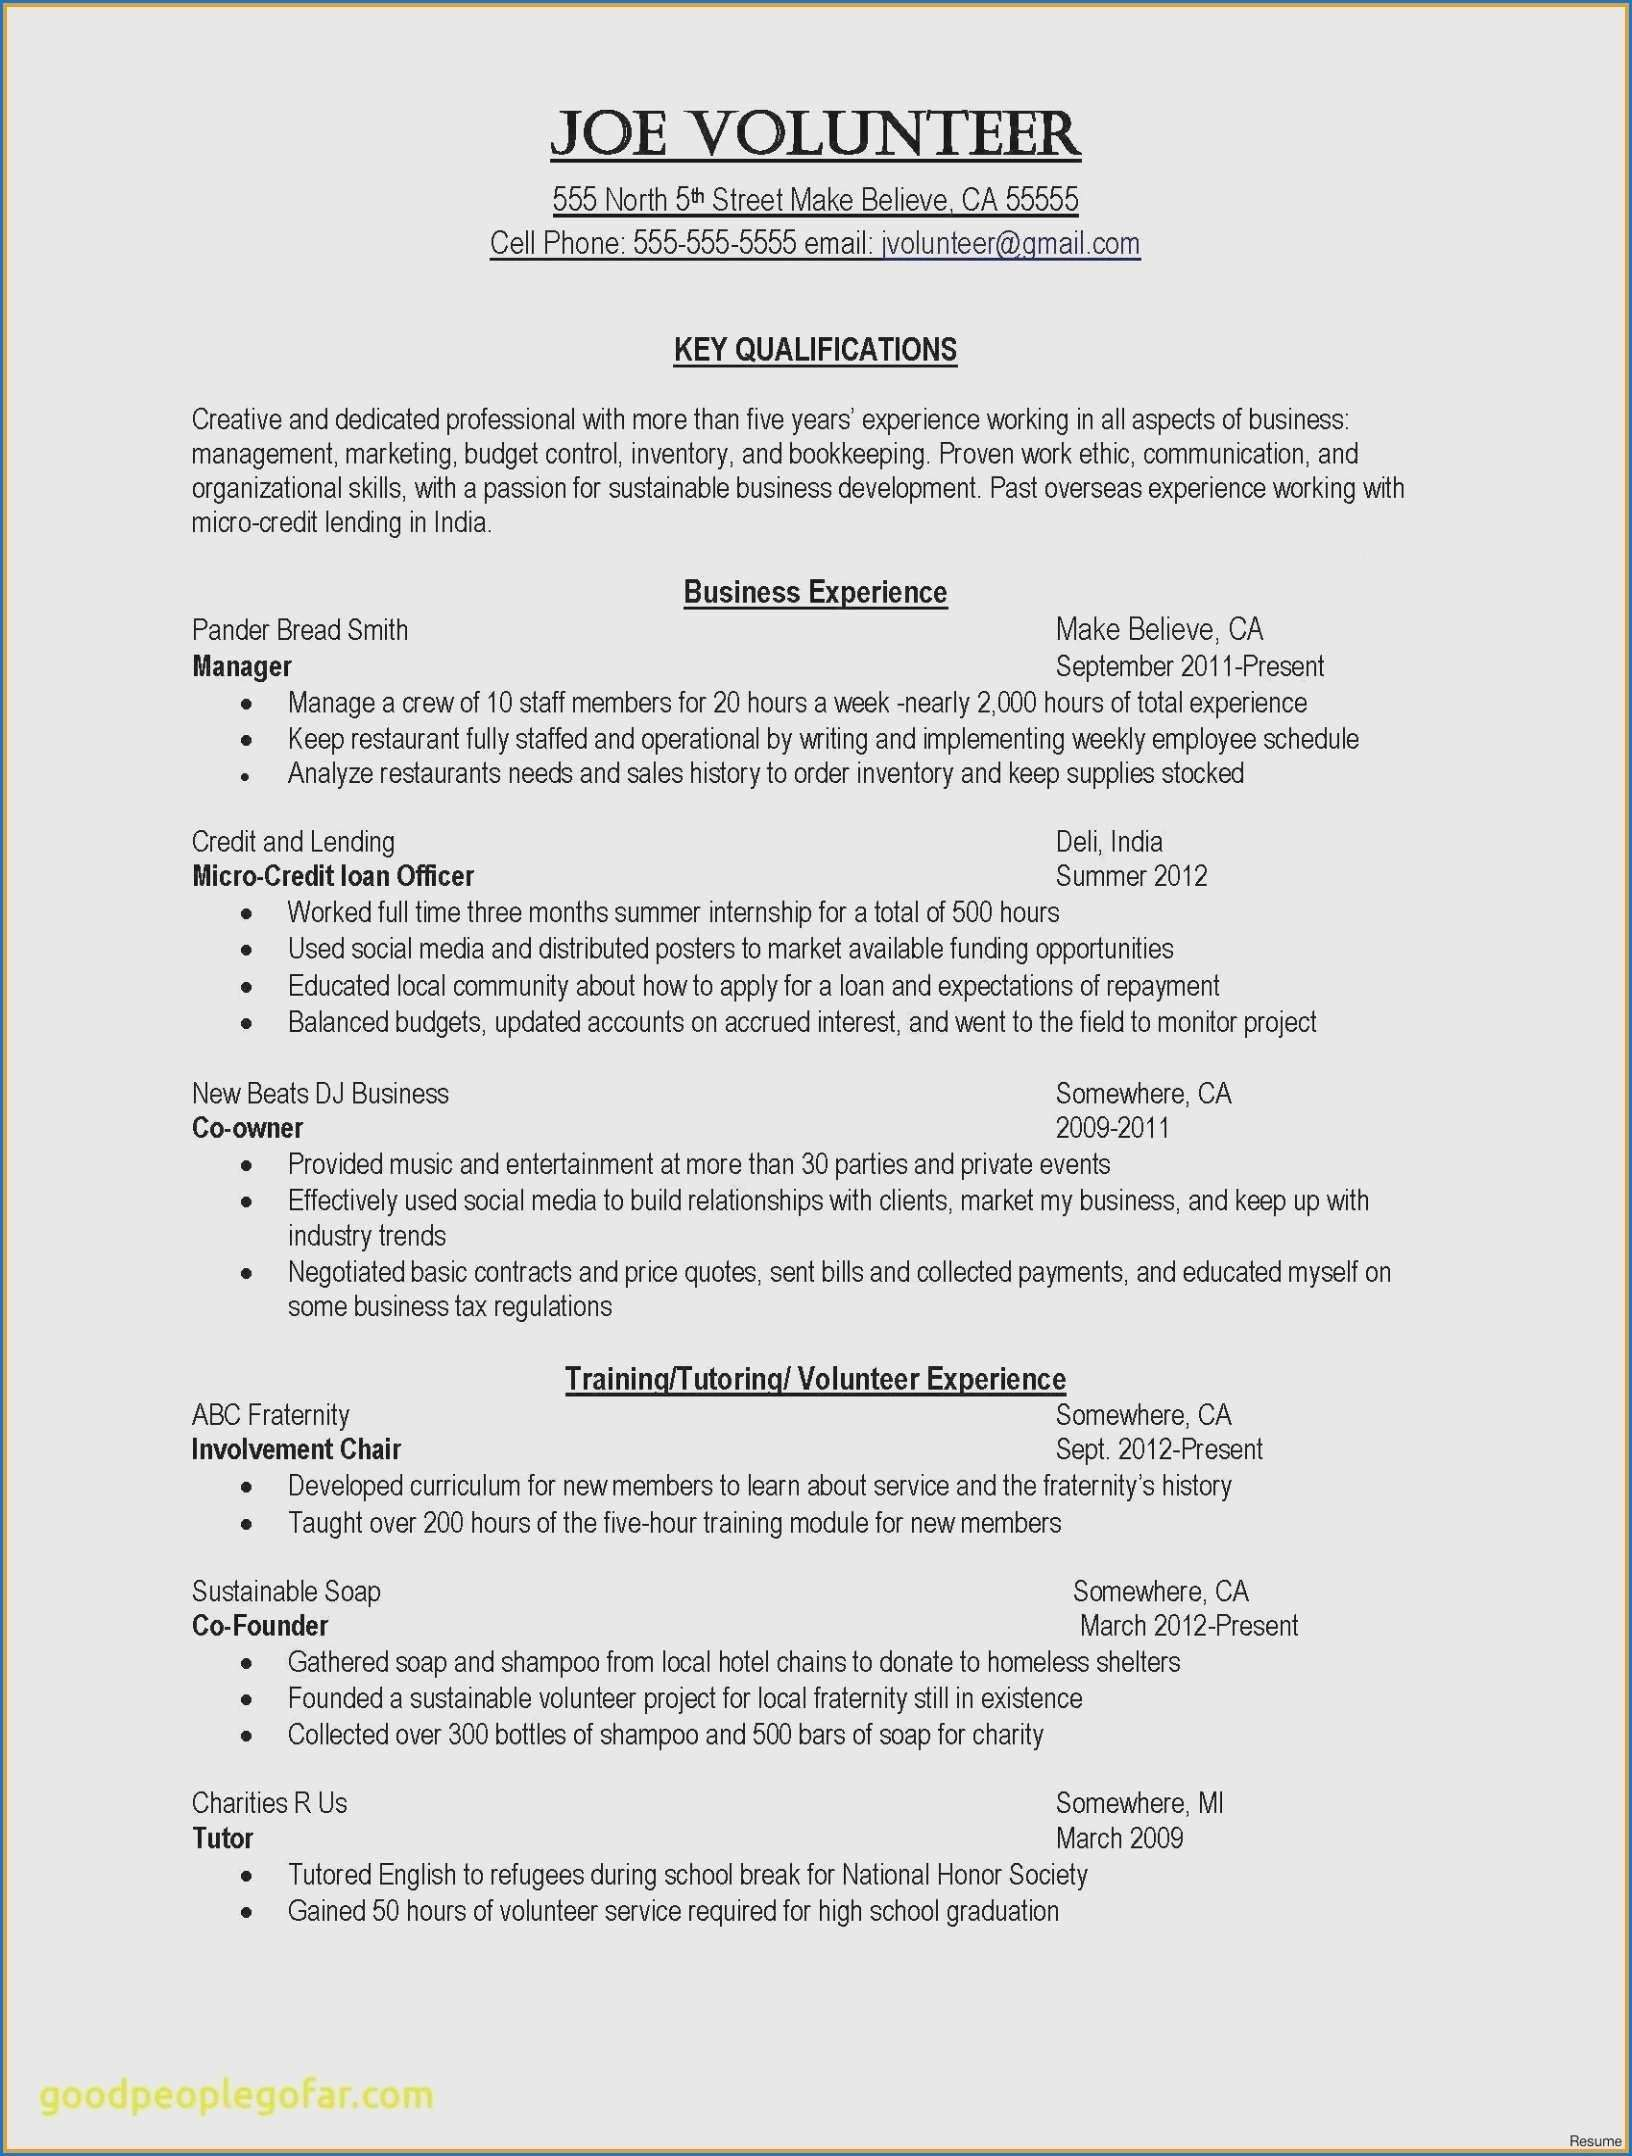 30 Social Media Resume Example Event Planning Quotes Work Ethic